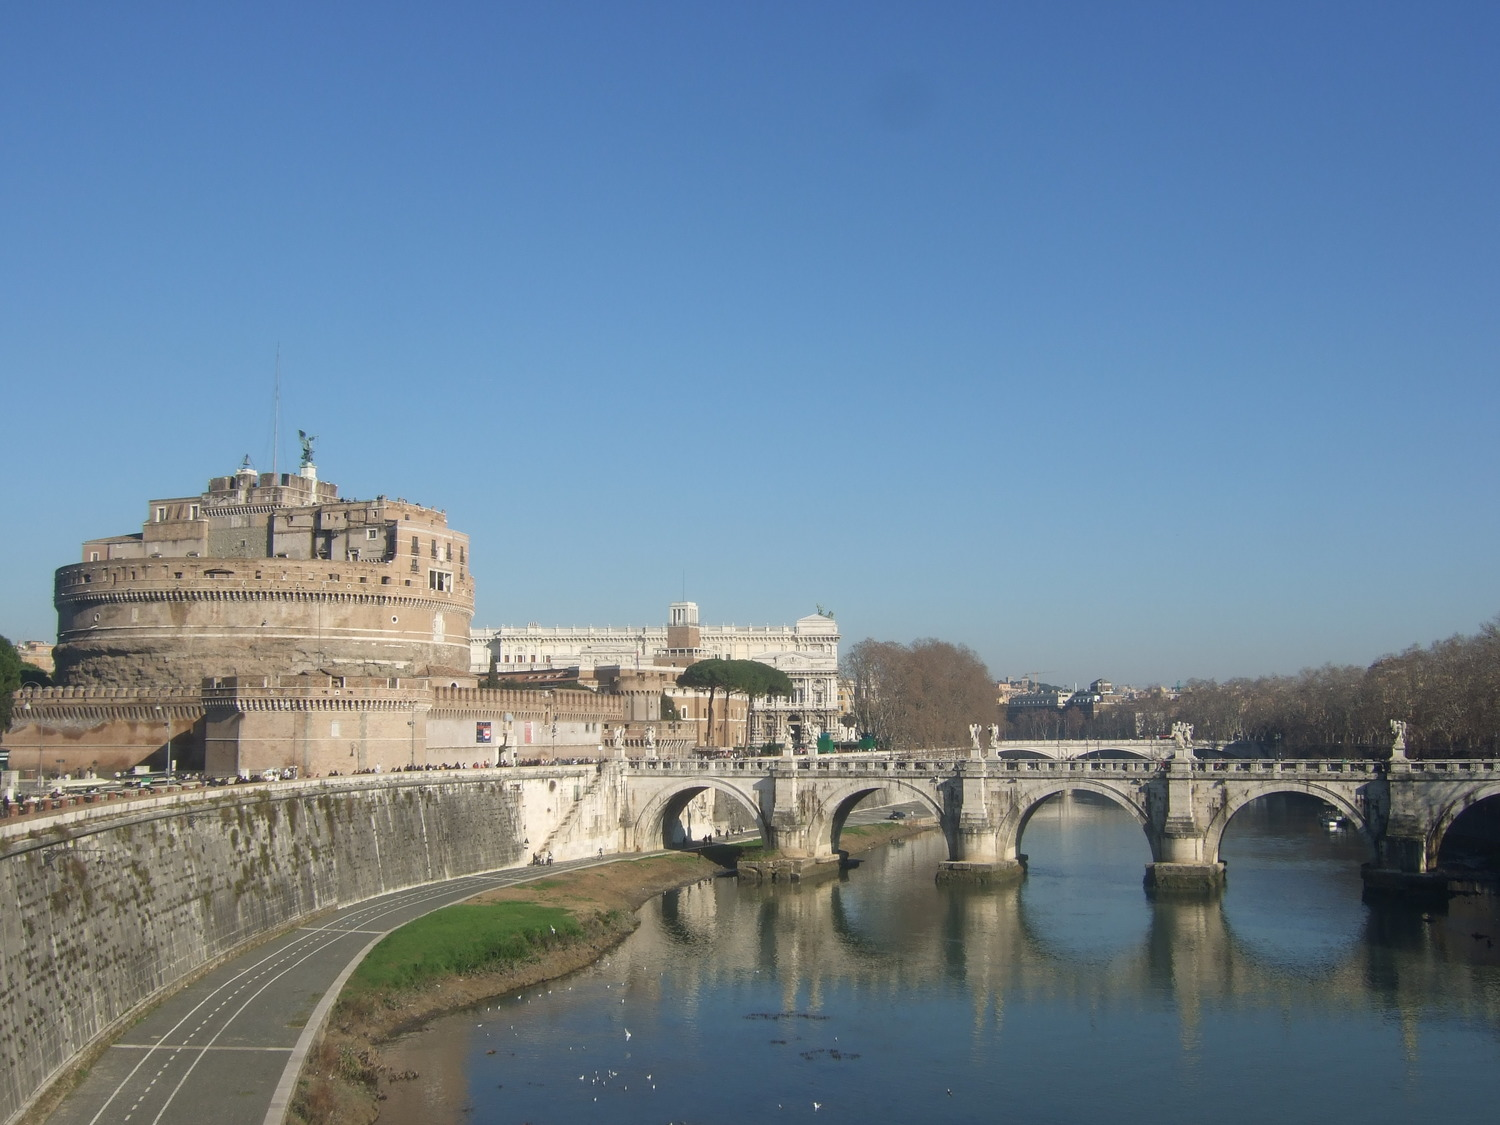 8Saint_Angel_s_castle__Rome